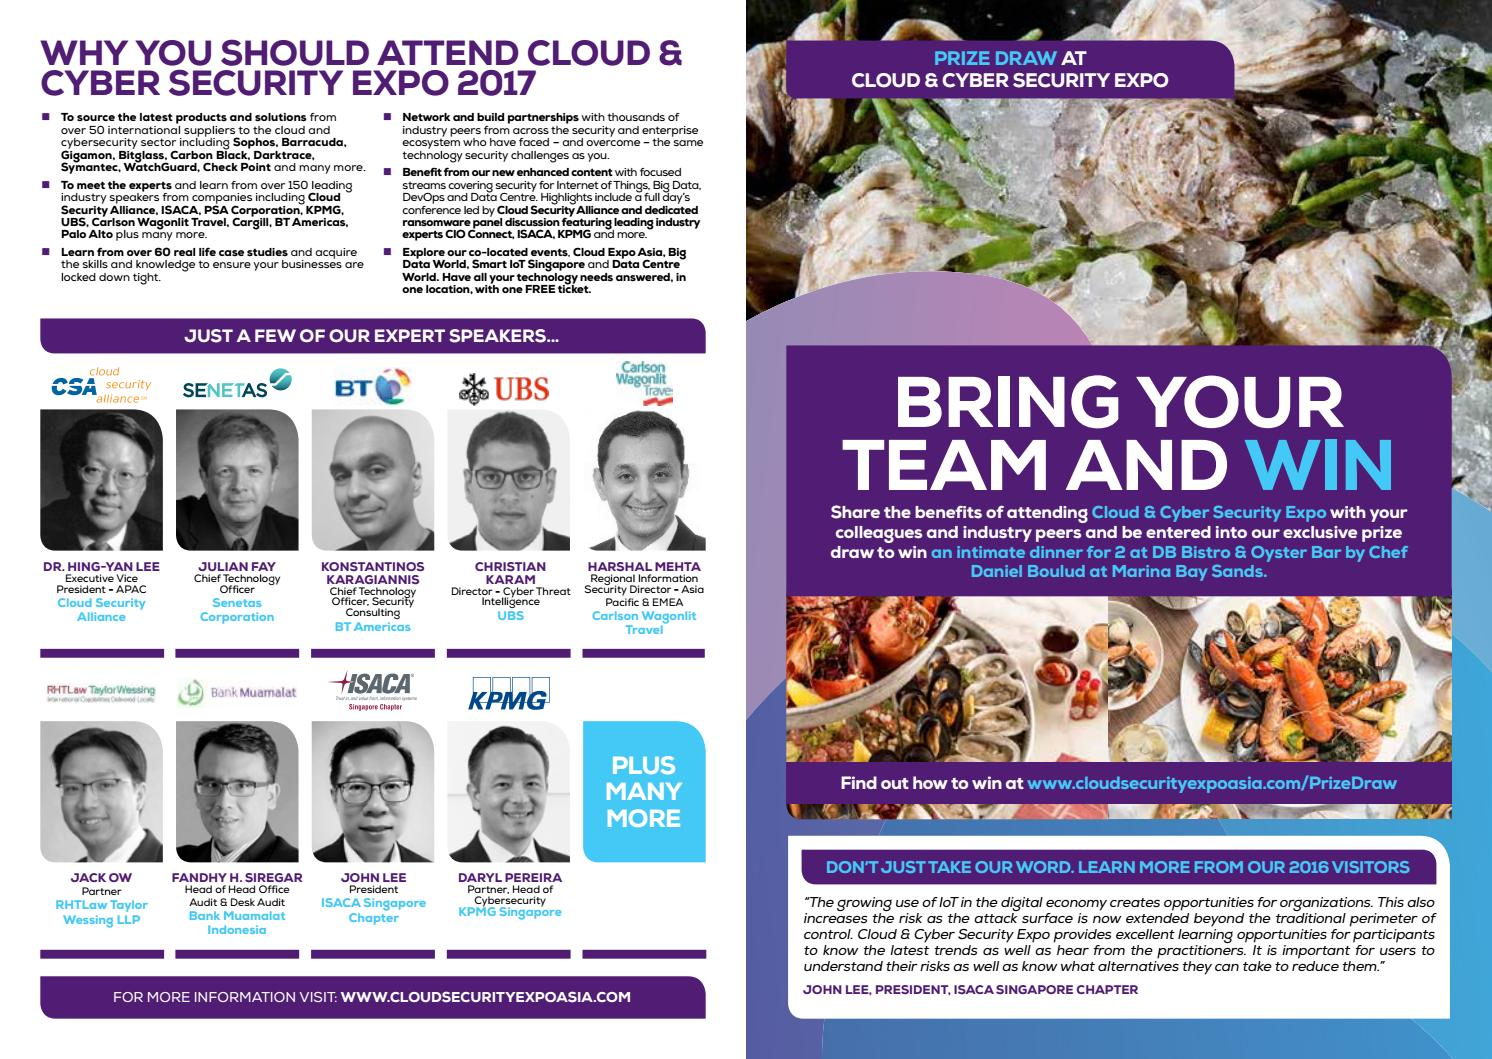 Cloud & Cyber Security Expo, Singapore 2017 Ticket by Cloud Expo